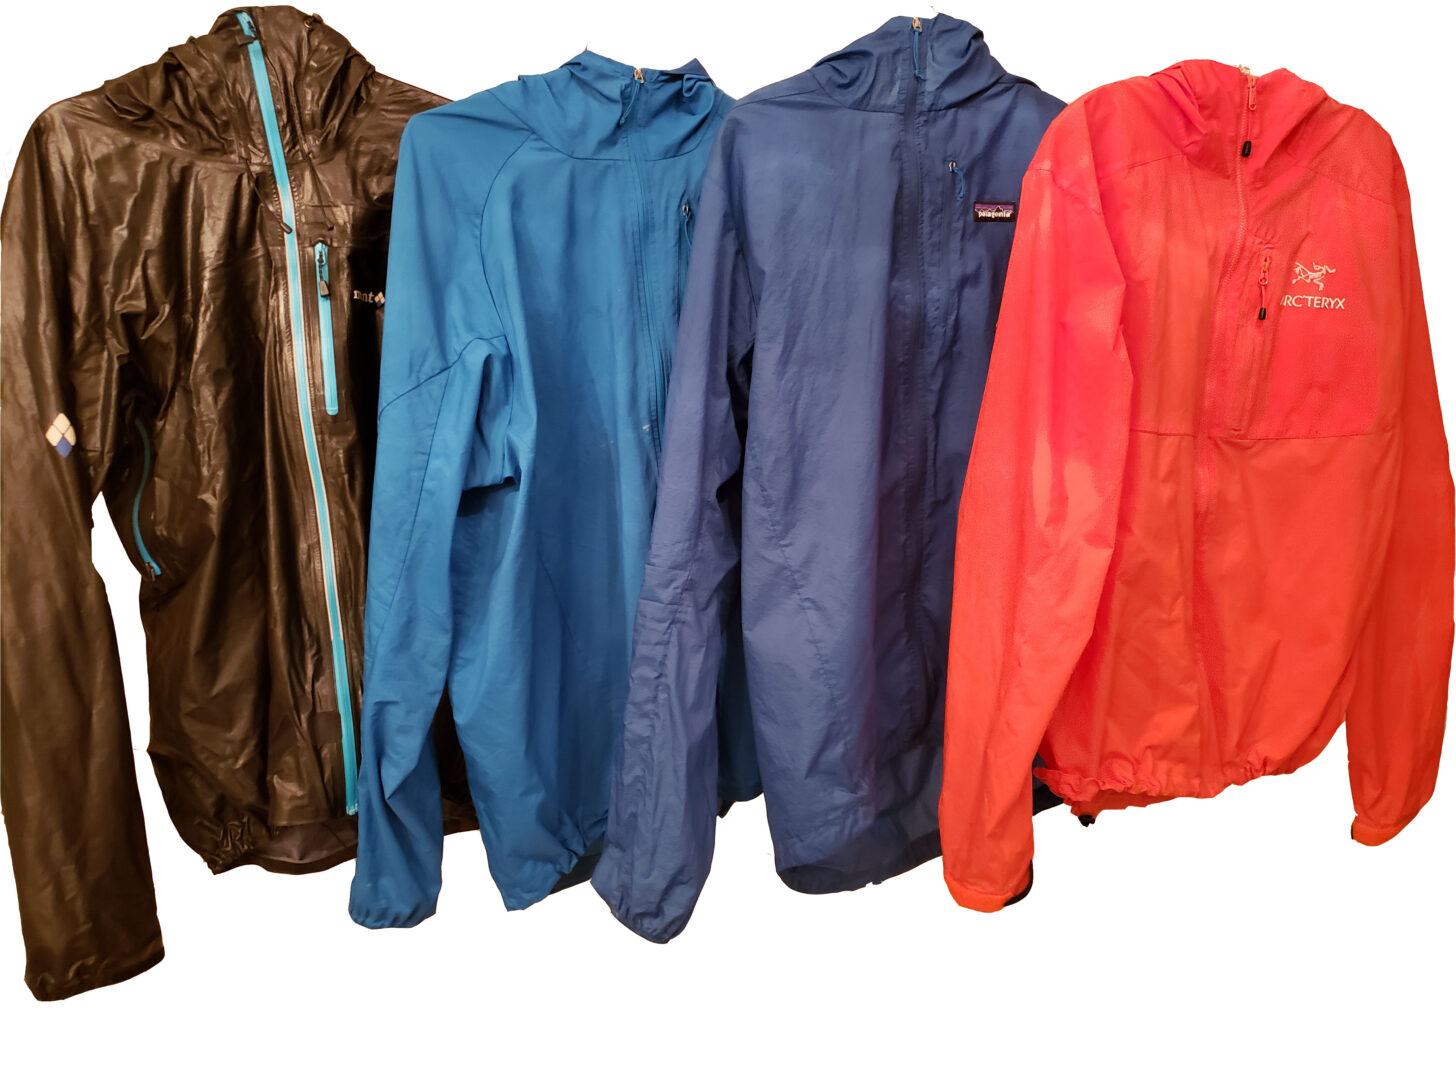 Four outdoor jackets against a white background.